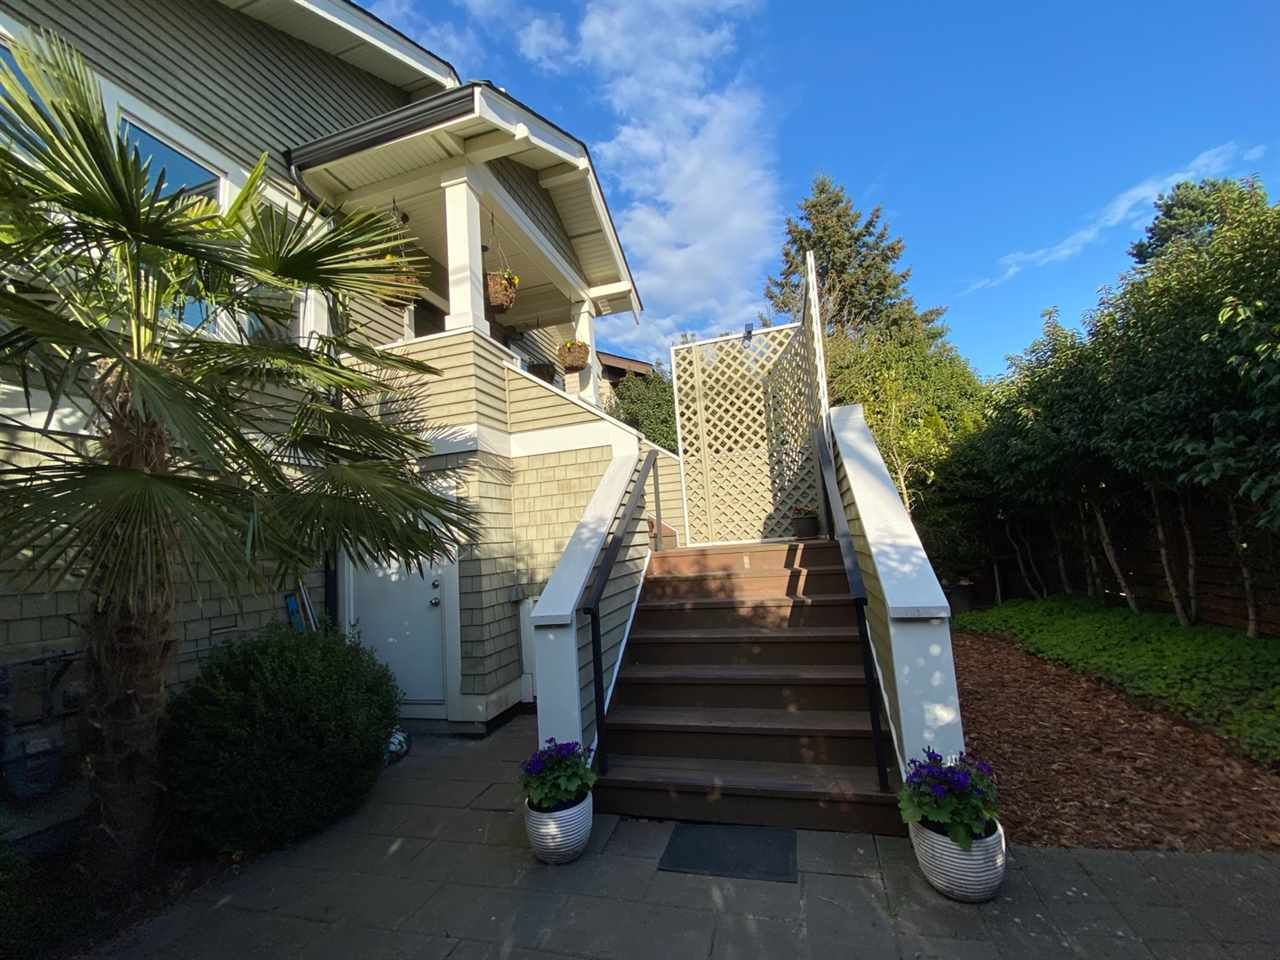 Main Photo: 2795 W 8TH Avenue in Vancouver: Kitsilano 1/2 Duplex for sale (Vancouver West)  : MLS®# R2563168